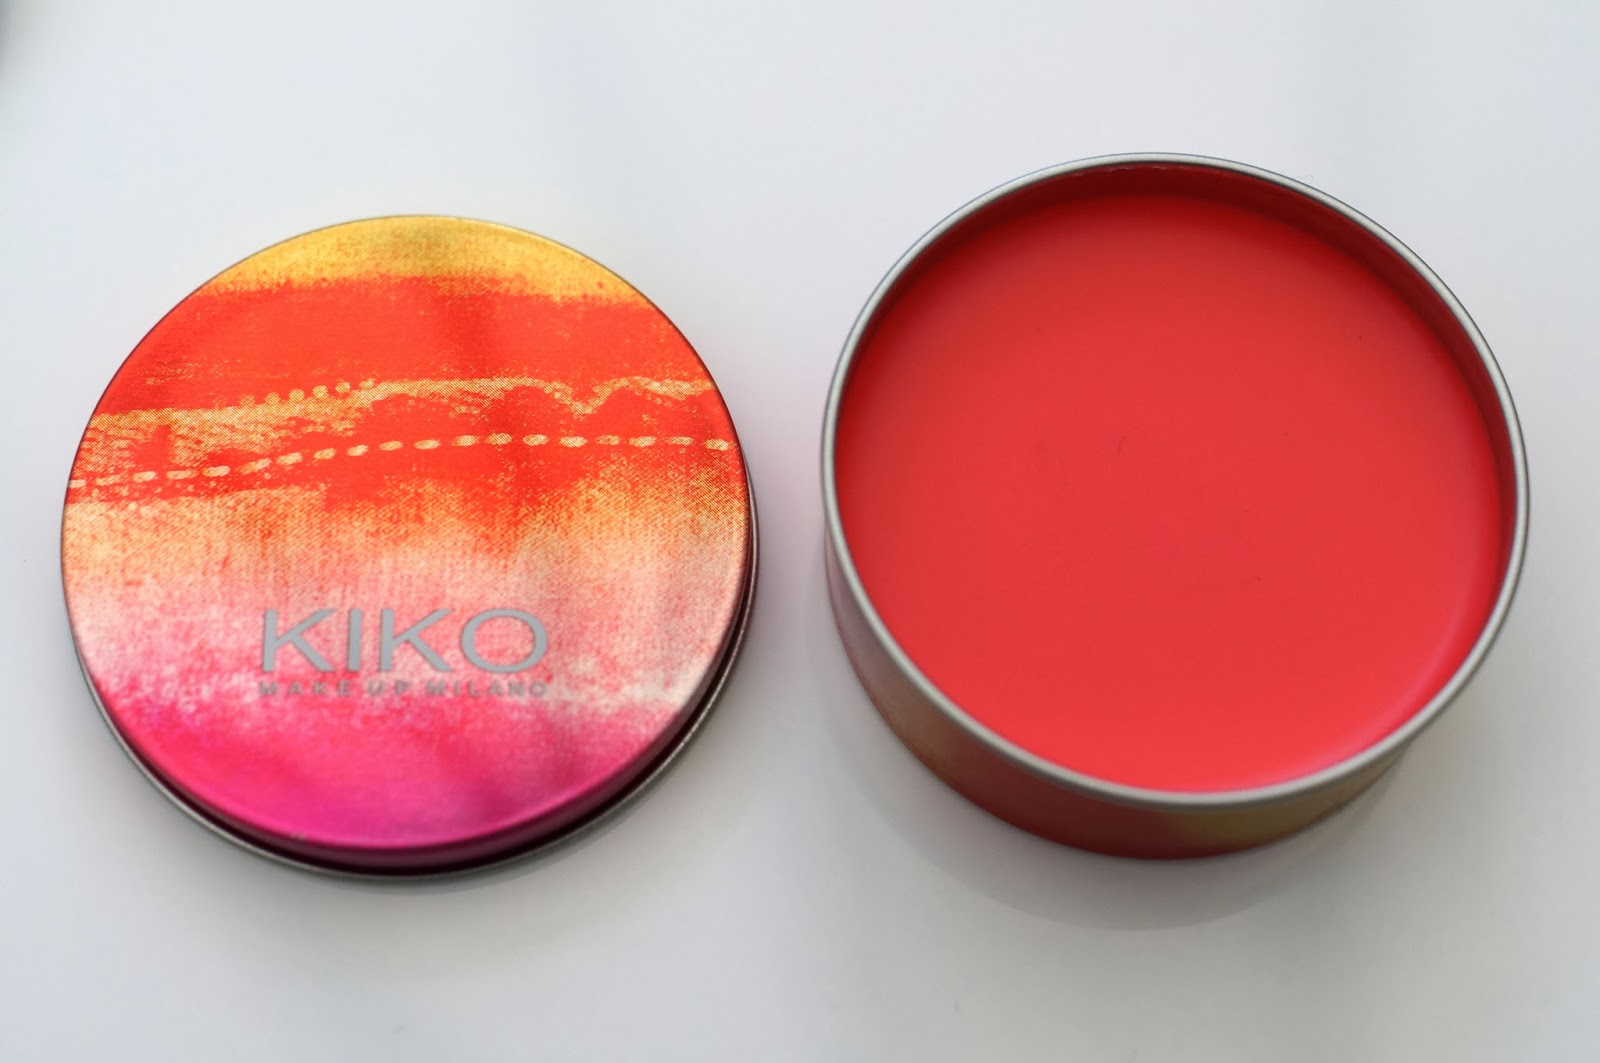 kiko lip and cheek stain